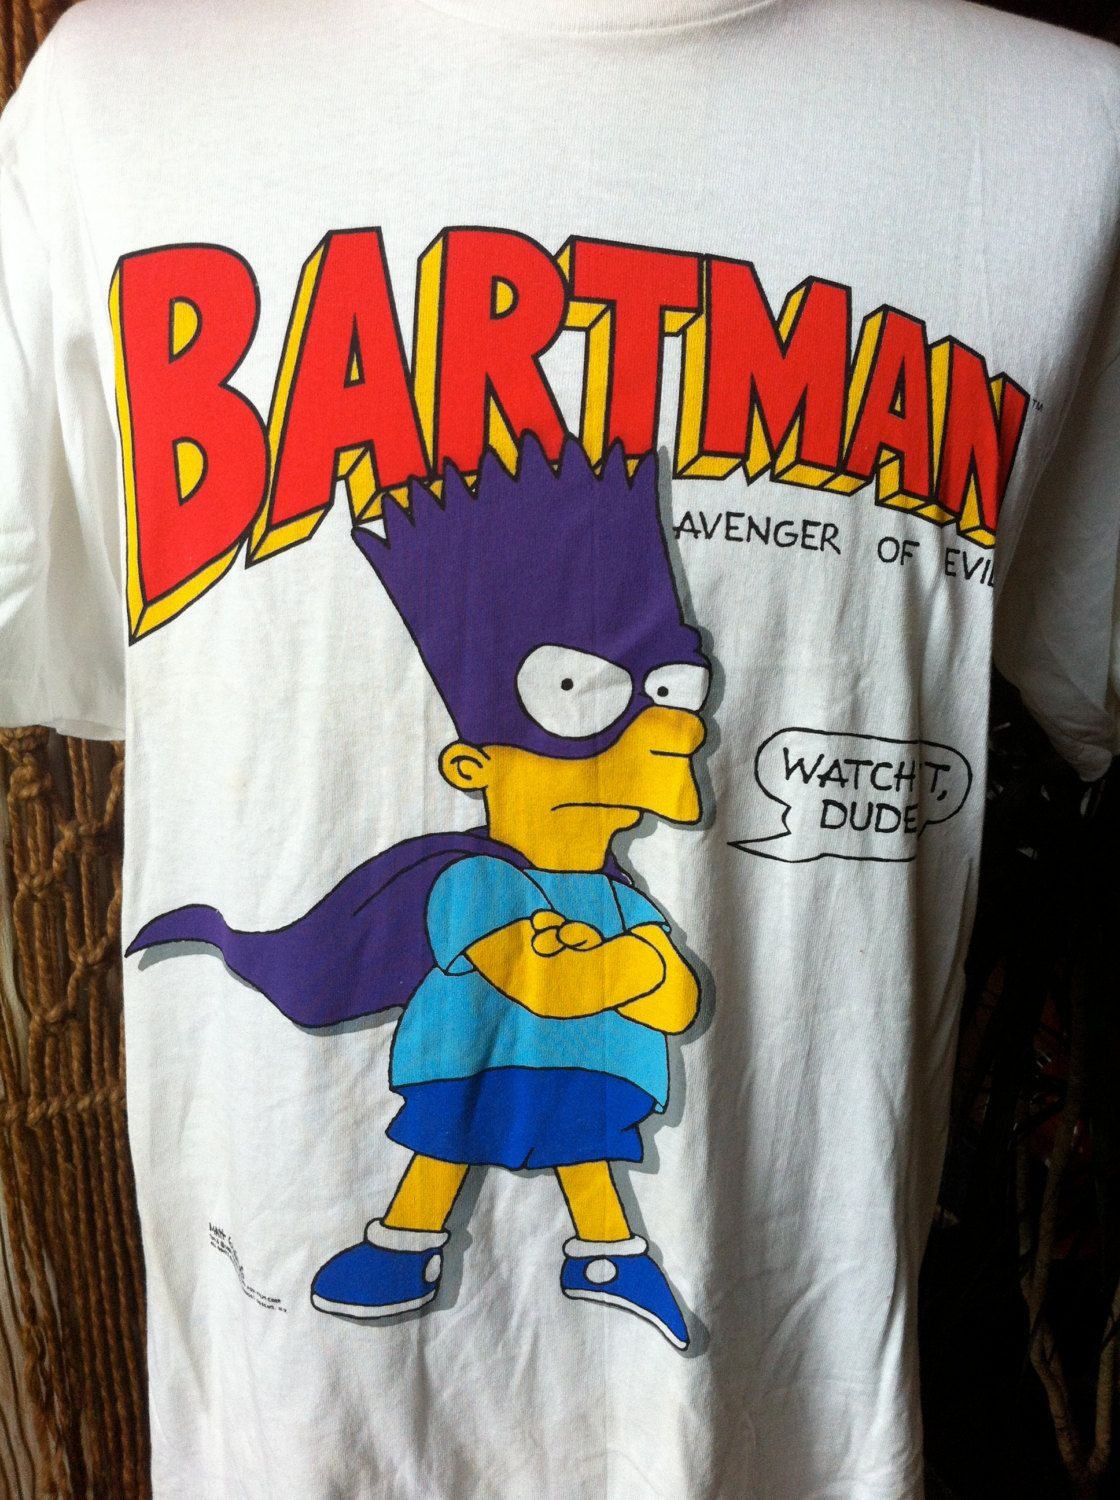 7454f051e97 Vintage Bartman Avenger of Evil Bart Simpson XL T-Shirt 1989 Matt Groening  The Simpsons by theplunderdome on Etsy